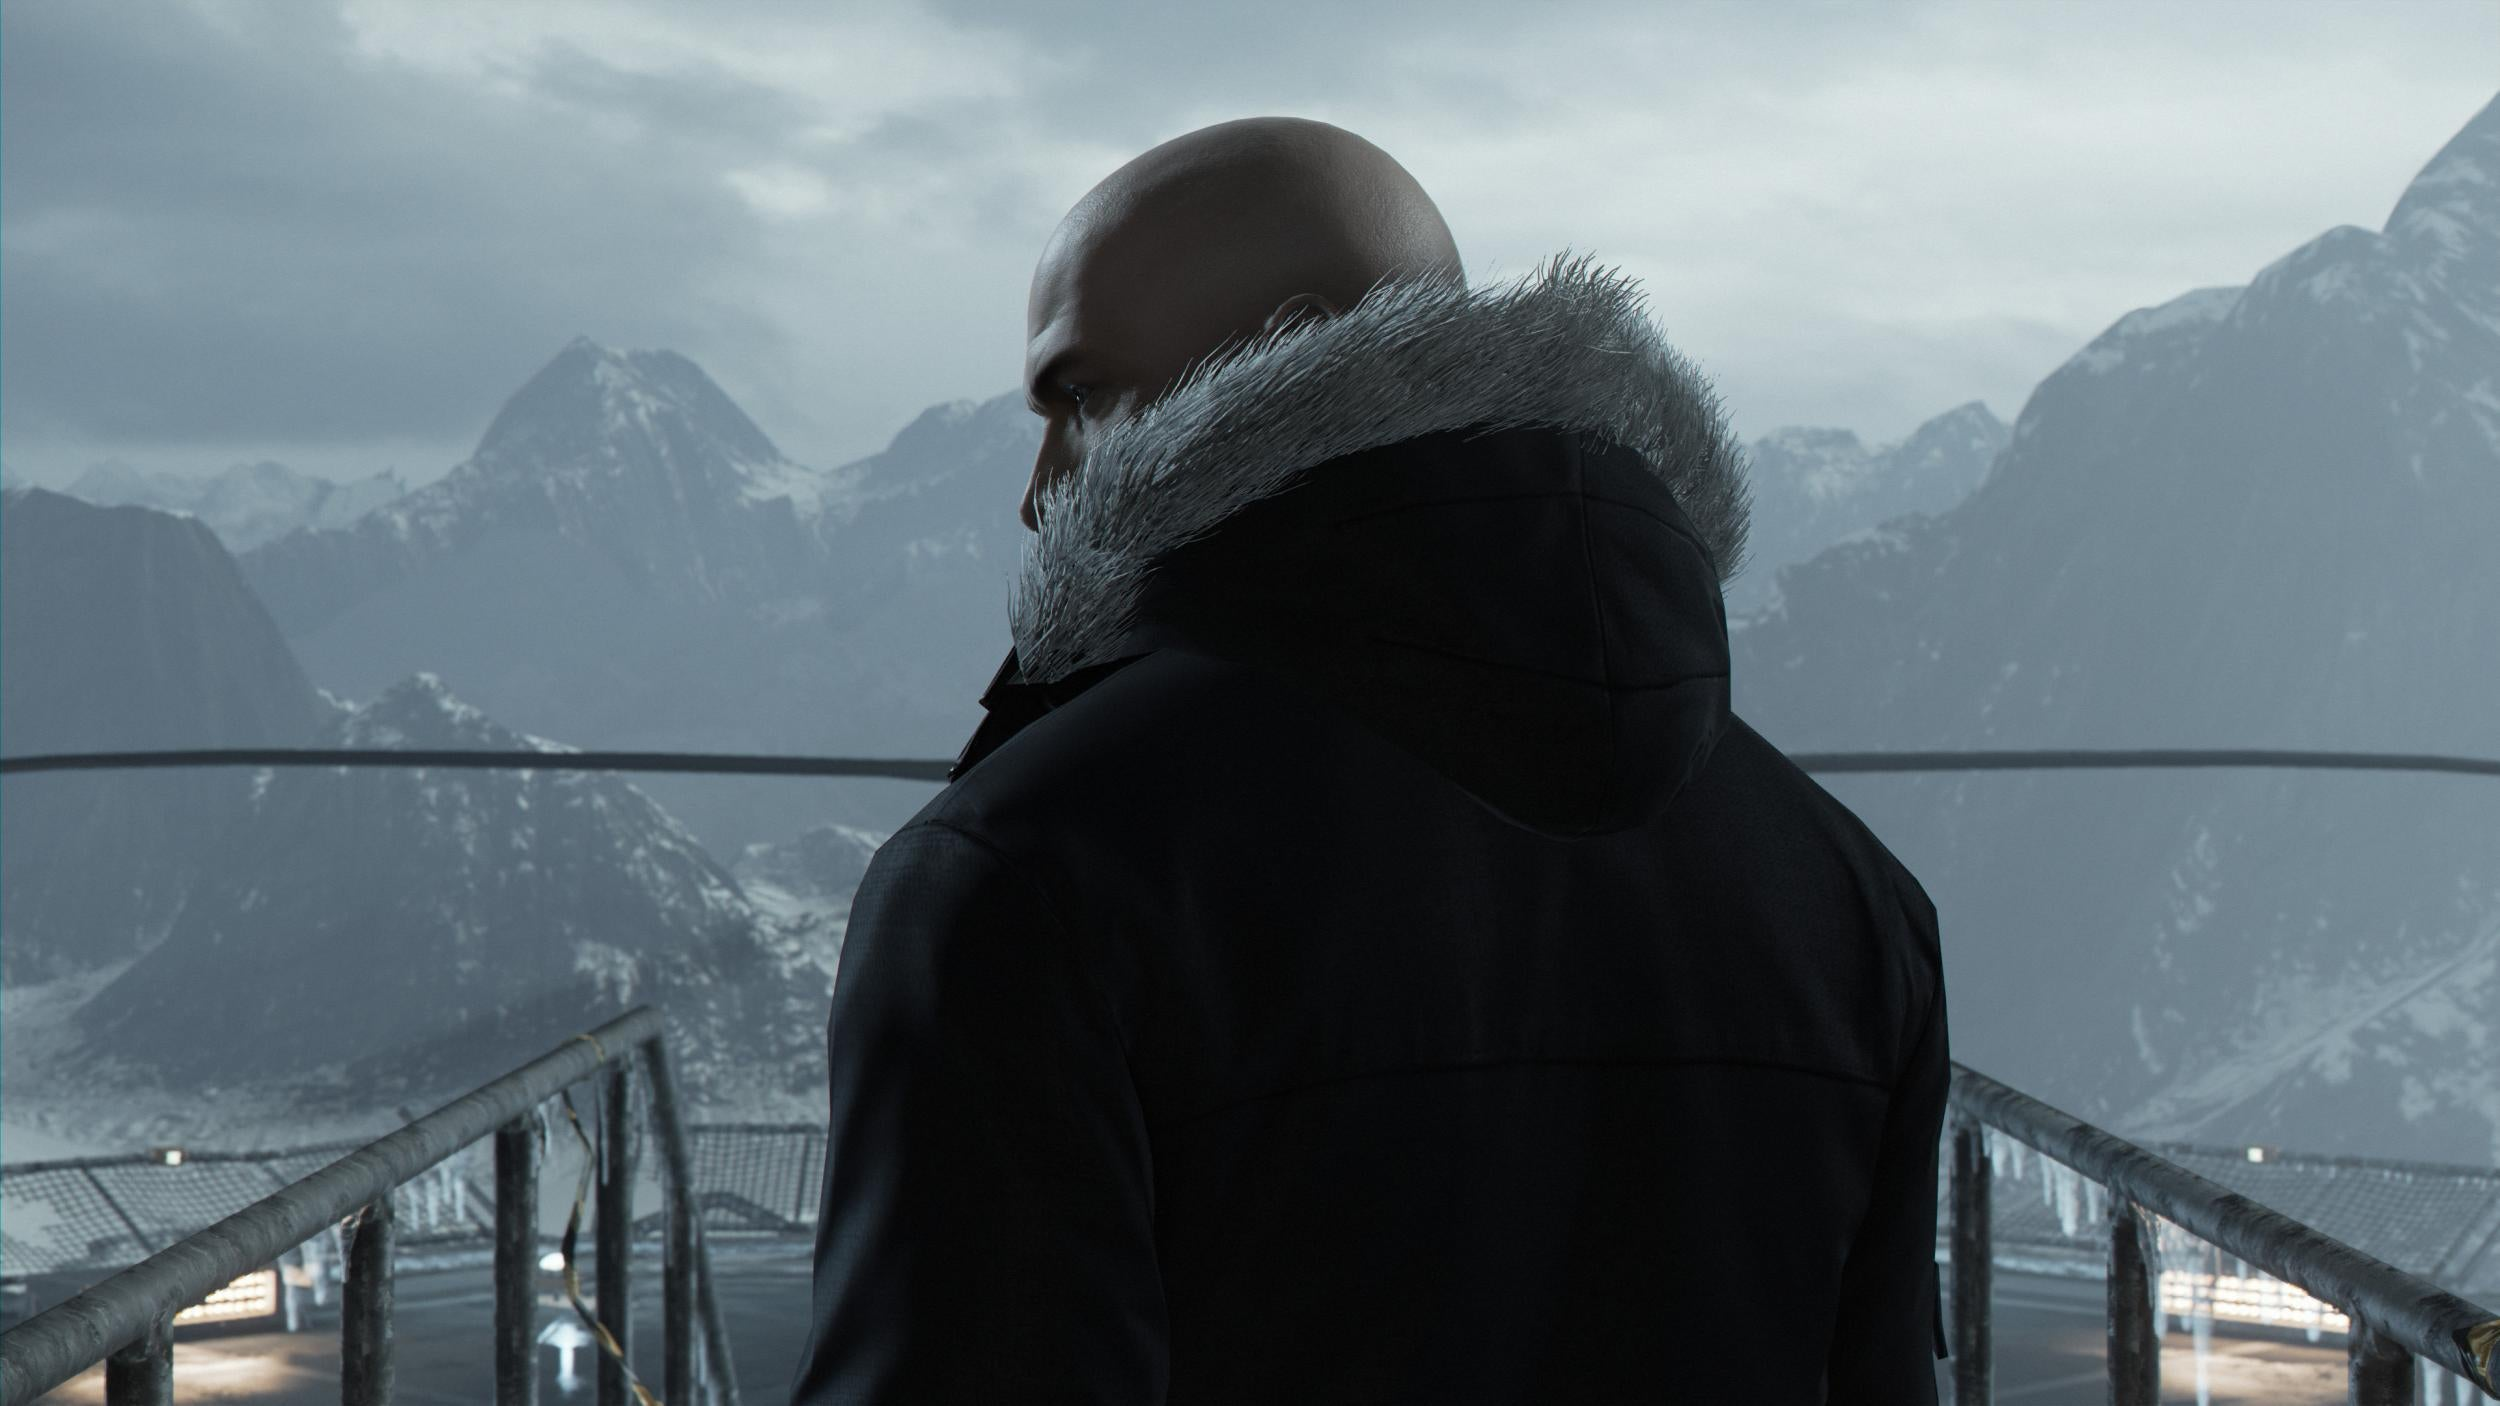 Hitman Review Episode One Truly Captivating The Independent